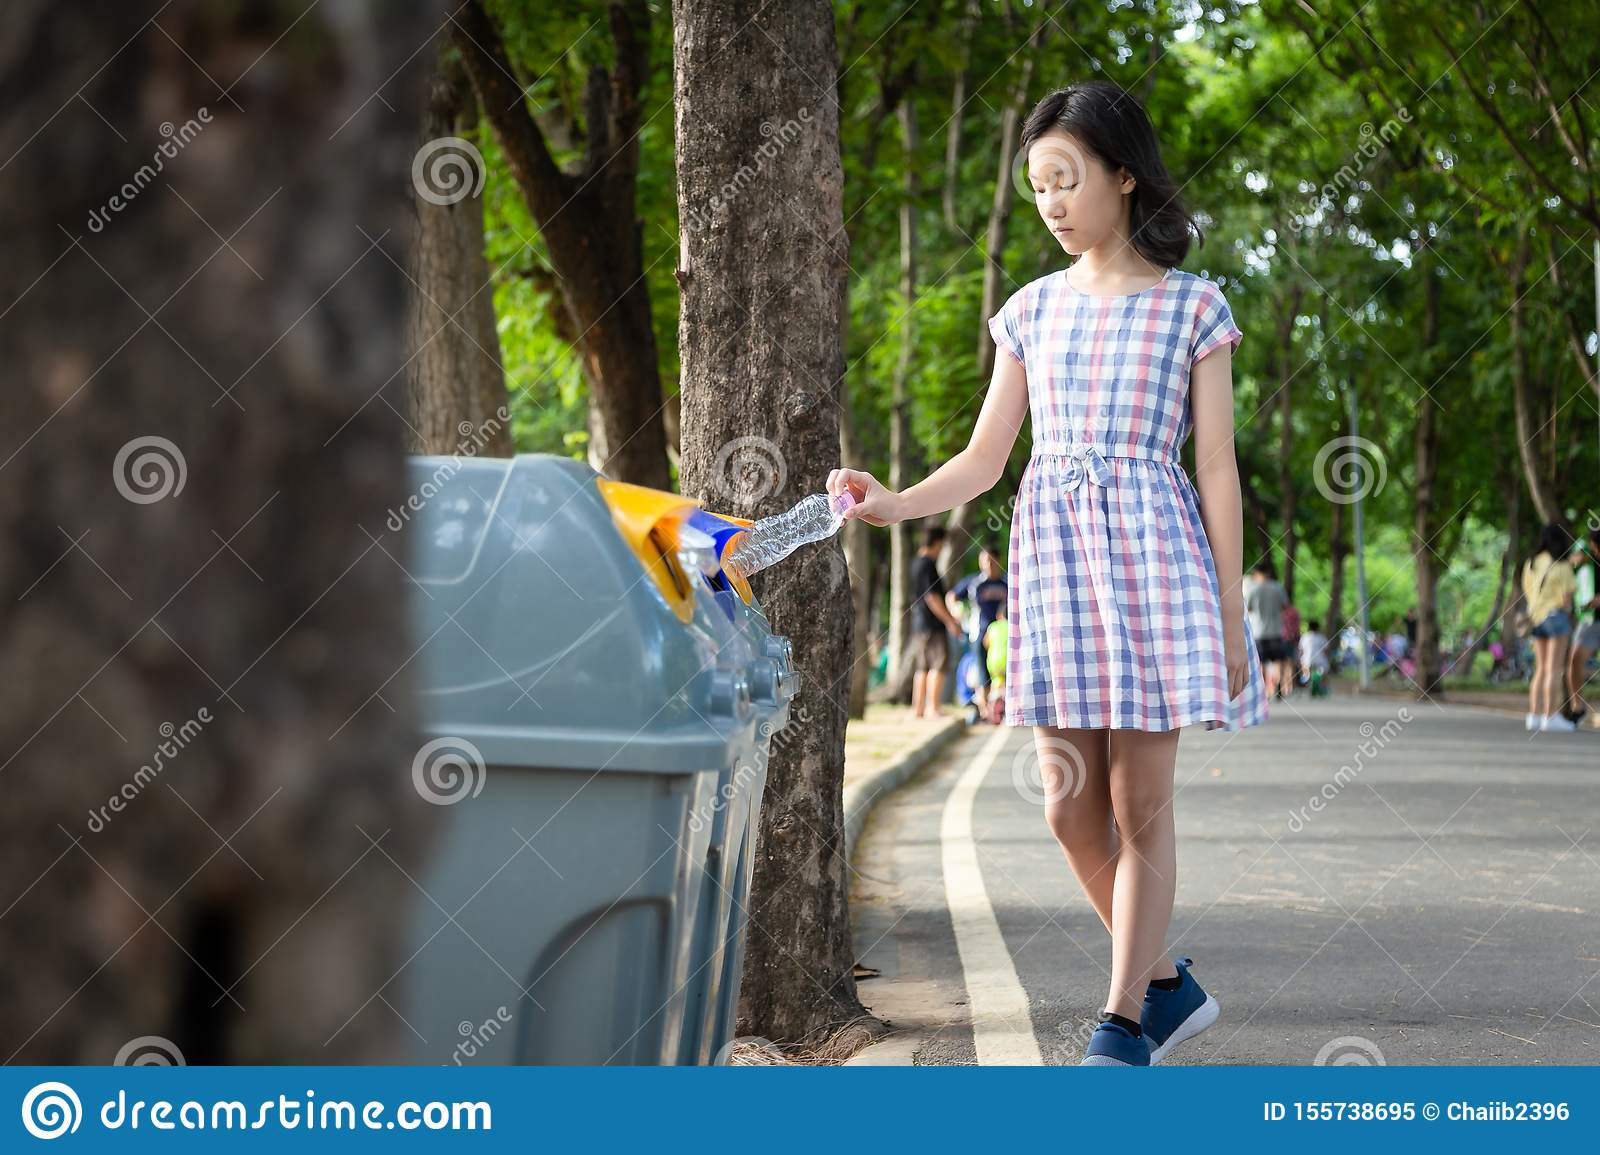 Asian little child girl hand holding plastic bottle,putting plastic water bottle in recycling bin,tourist woman hand throwing